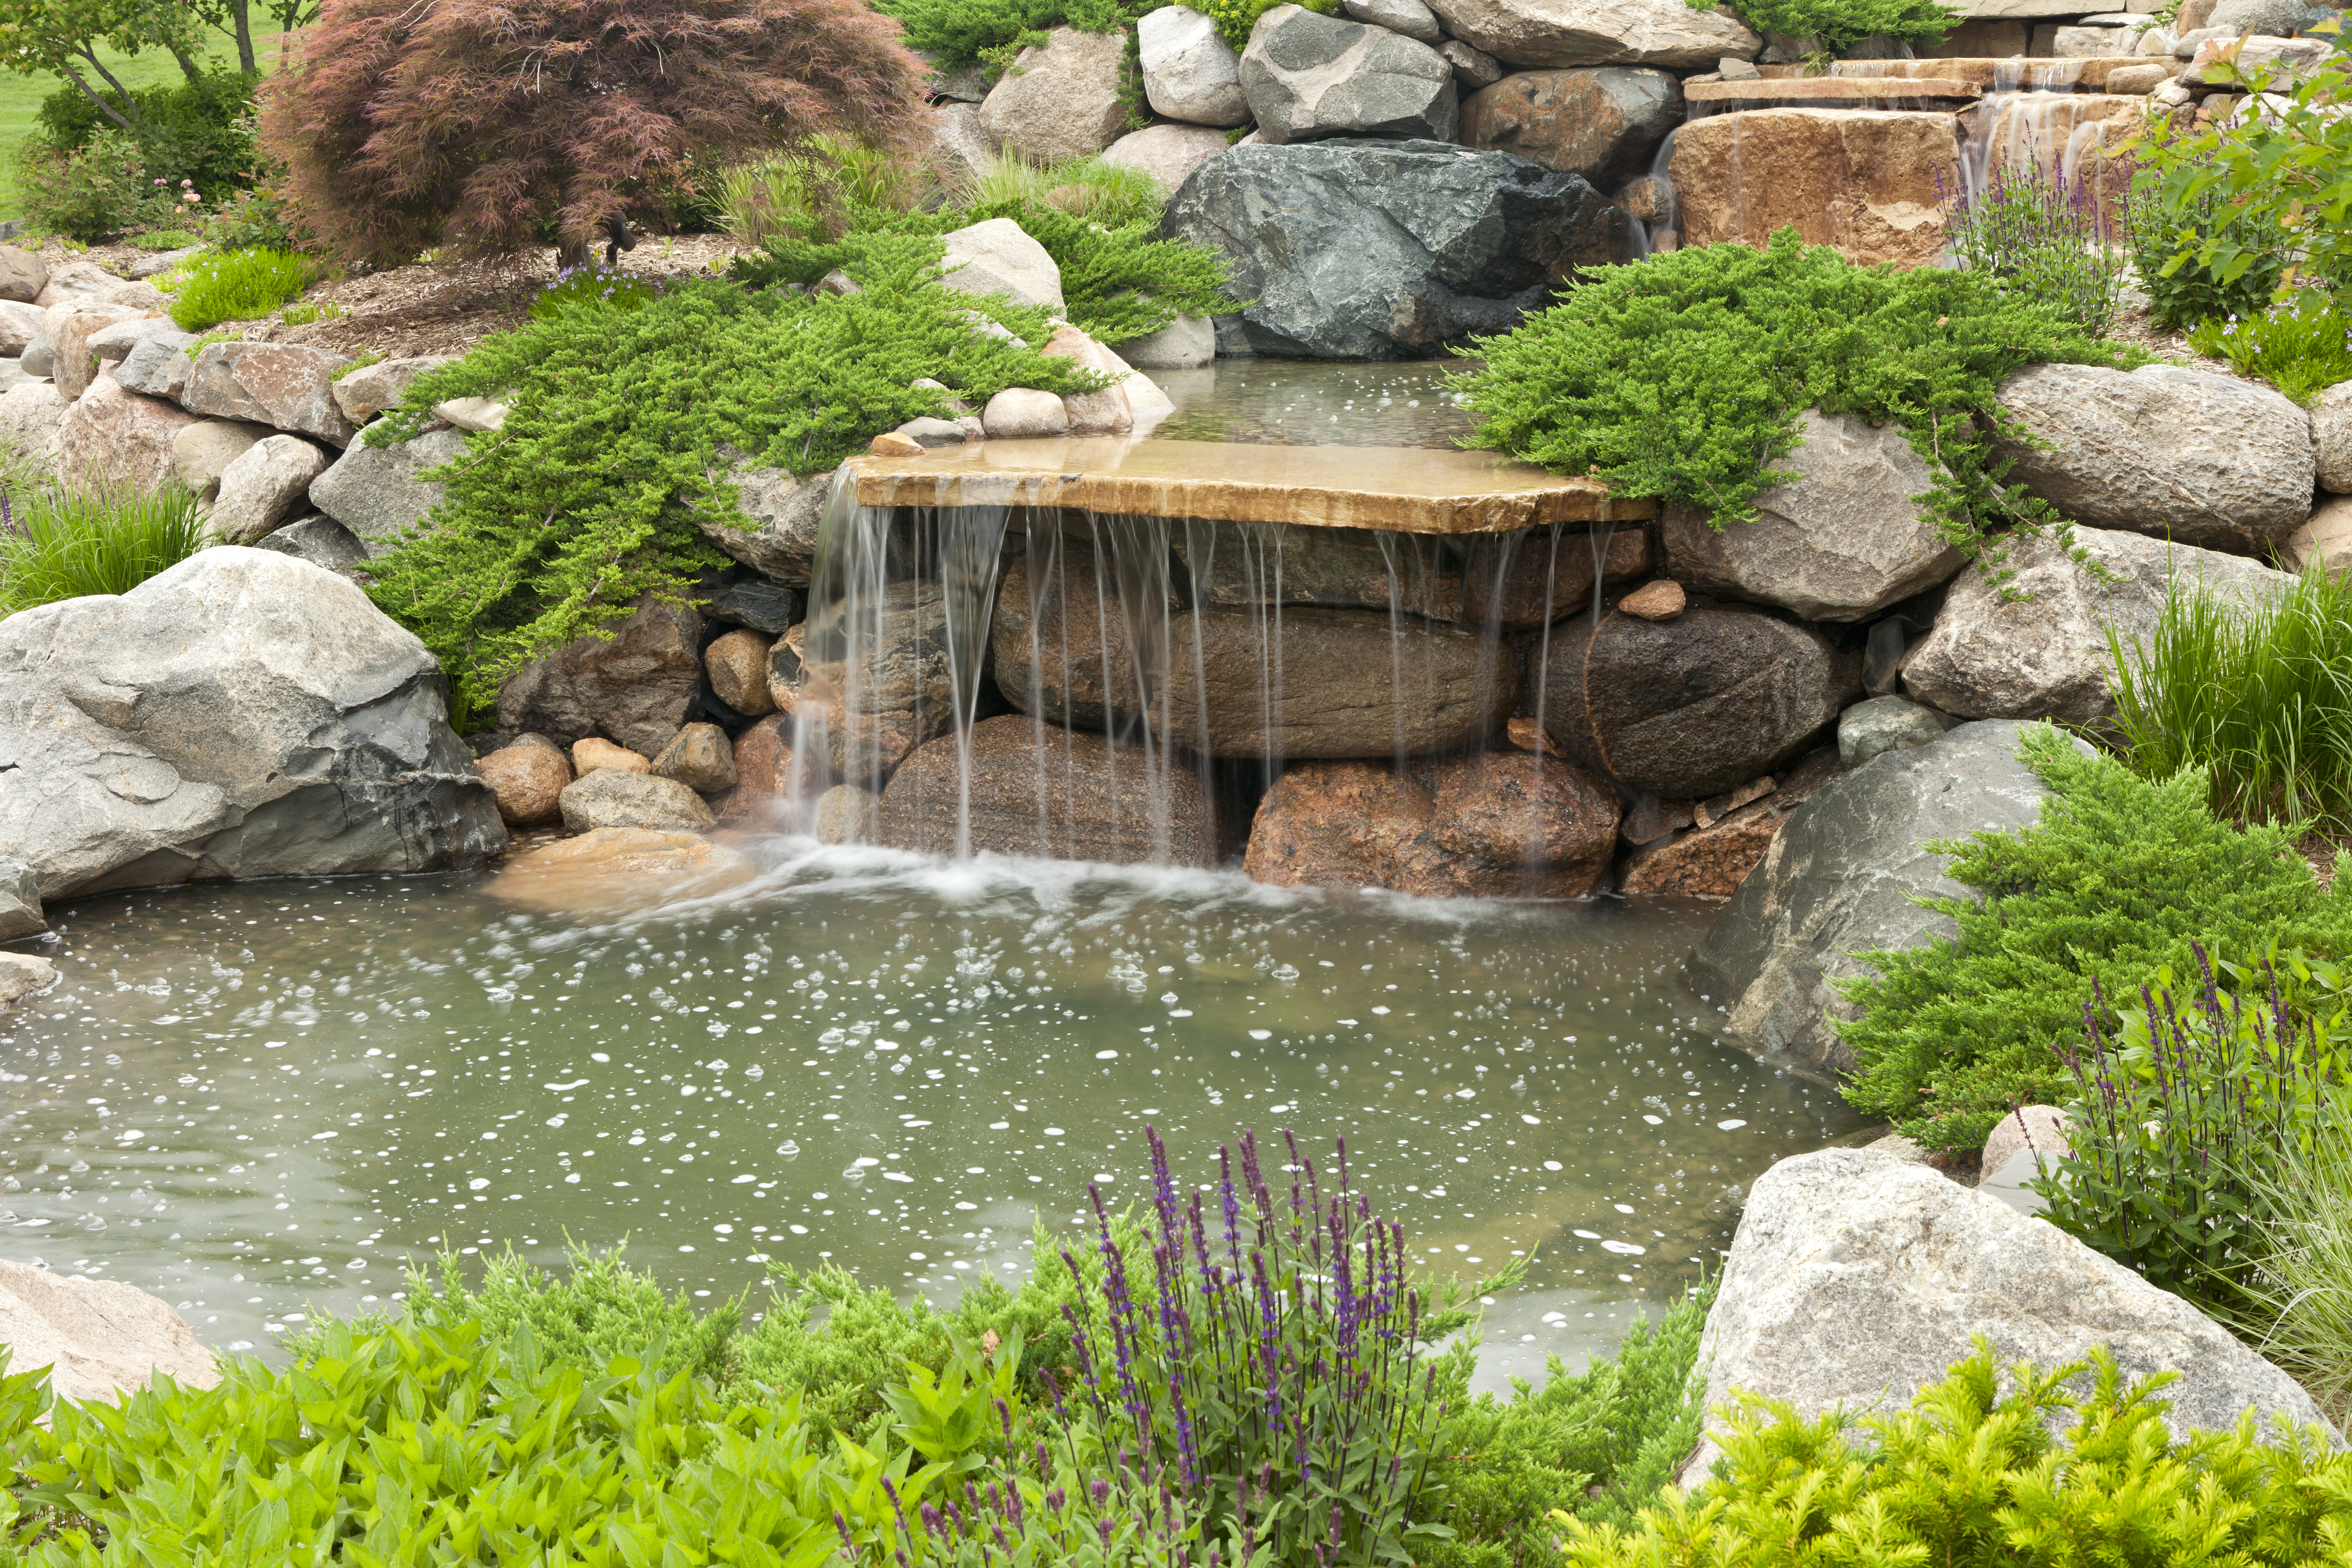 Water Worms in a Garden Pond | Home Guides | SF Gate